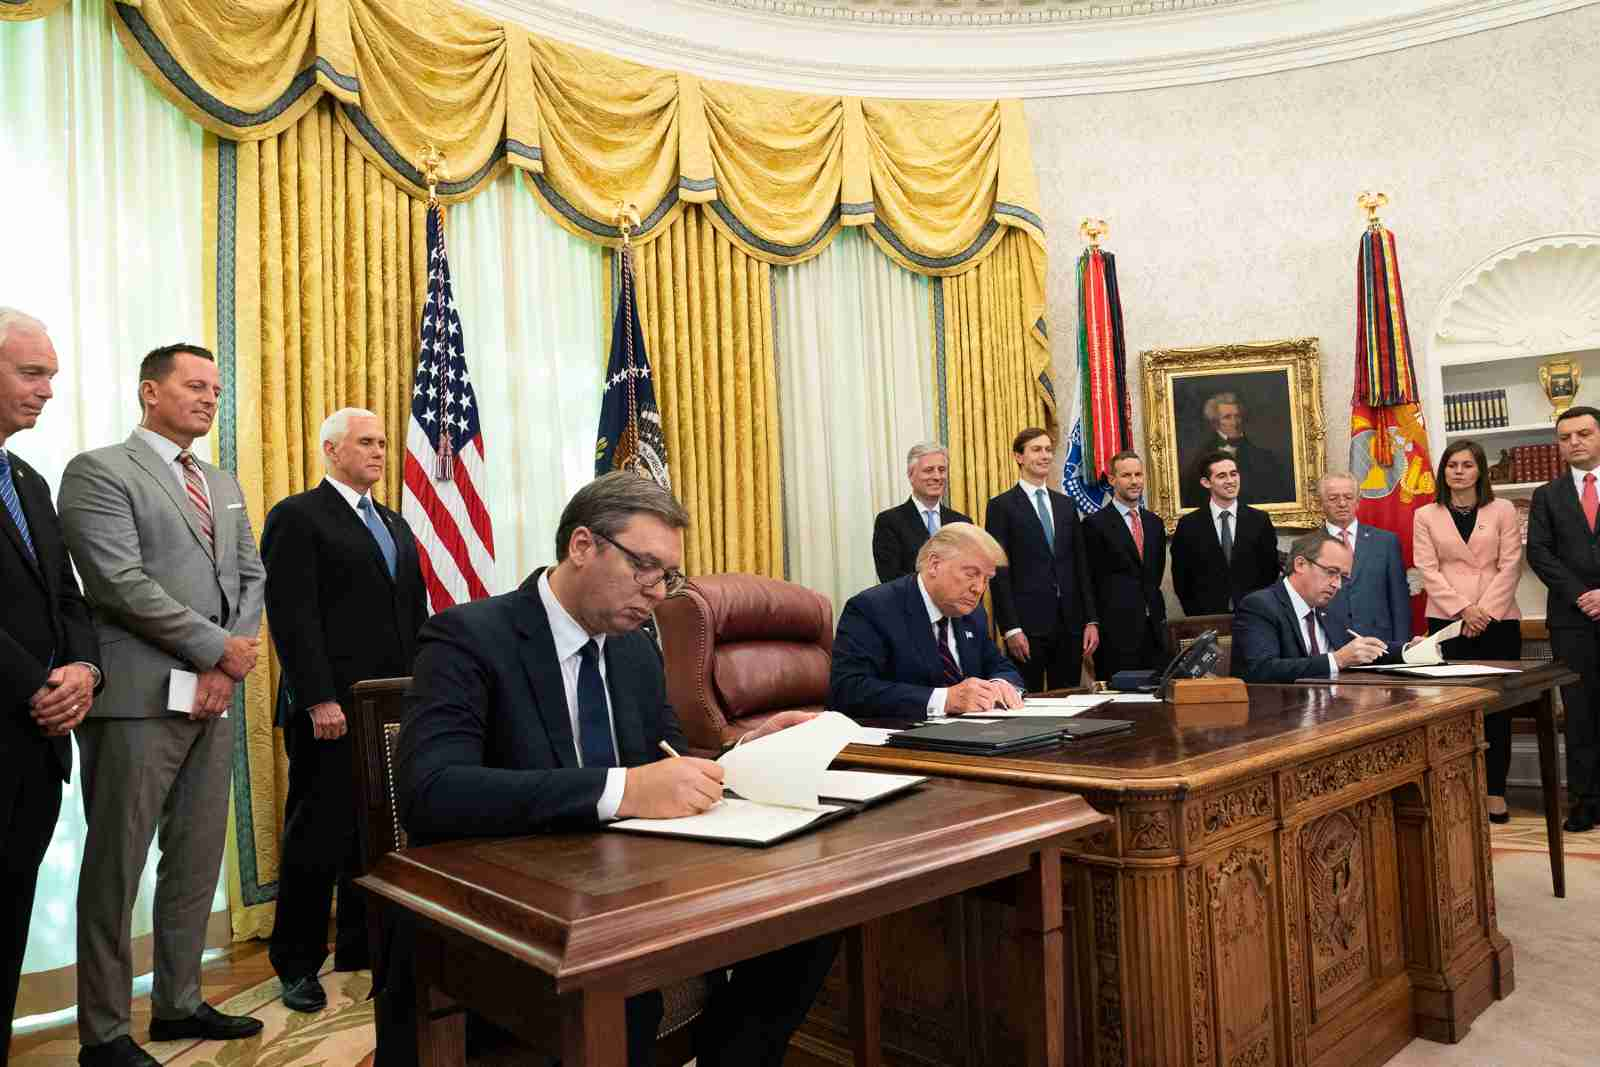 President Donald J. Trump, joined by Vice President Mike Pence, participates in a signing ceremony with Serbian President Aleksandar Vučić and Kosovo Prime Minister Avdullah Hoti Friday, Sept. 4, 2020, in the Oval Office of the White House. (Official White House Photo by D. Myles Cullen)